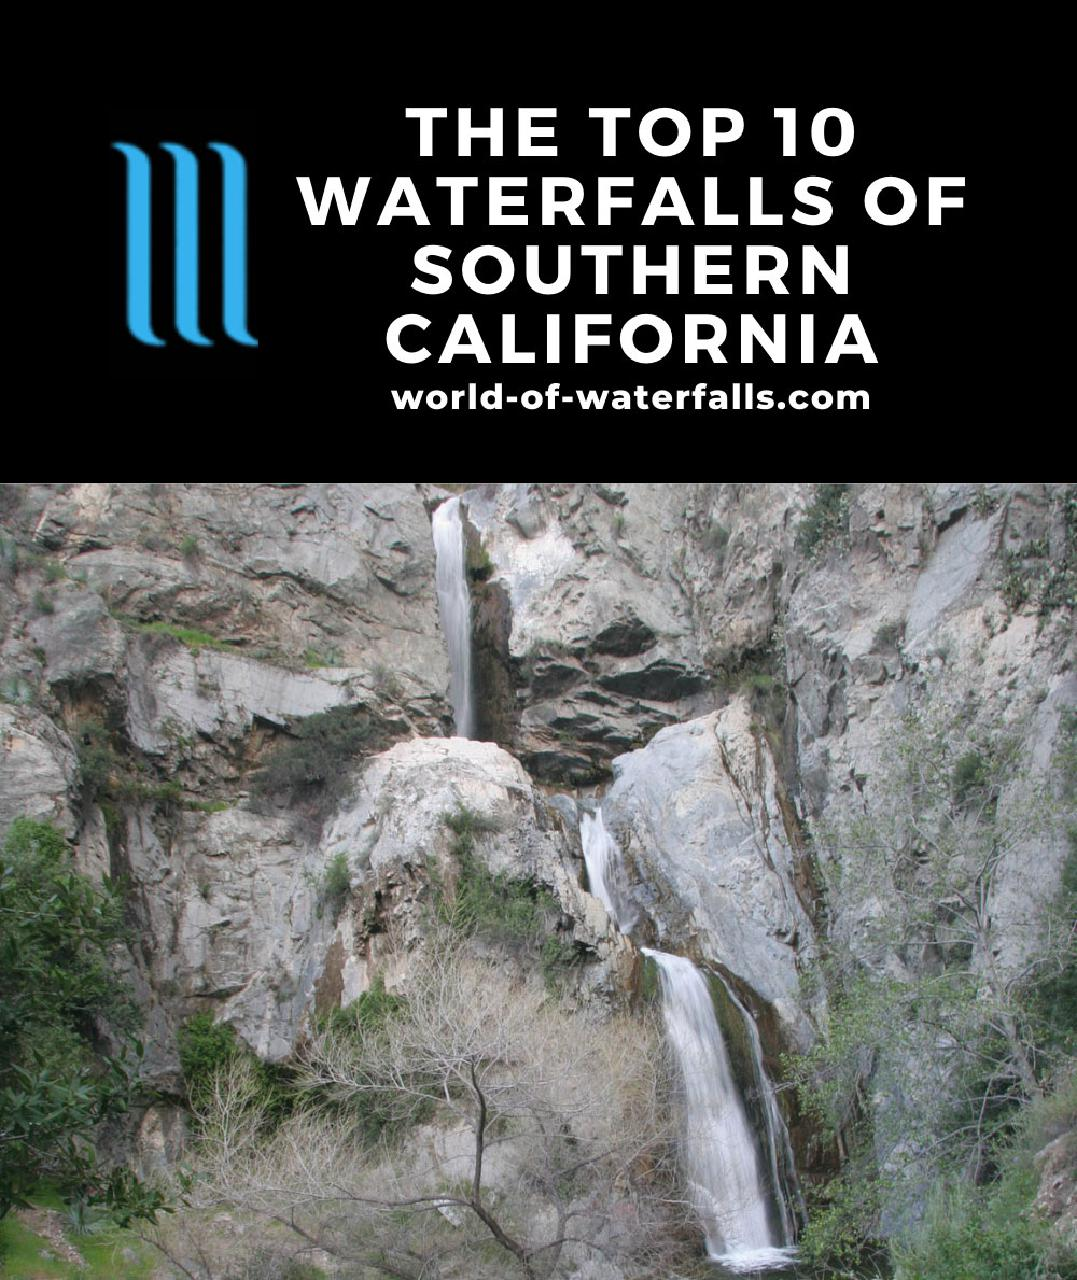 The Top 10 Waterfalls of Southern California